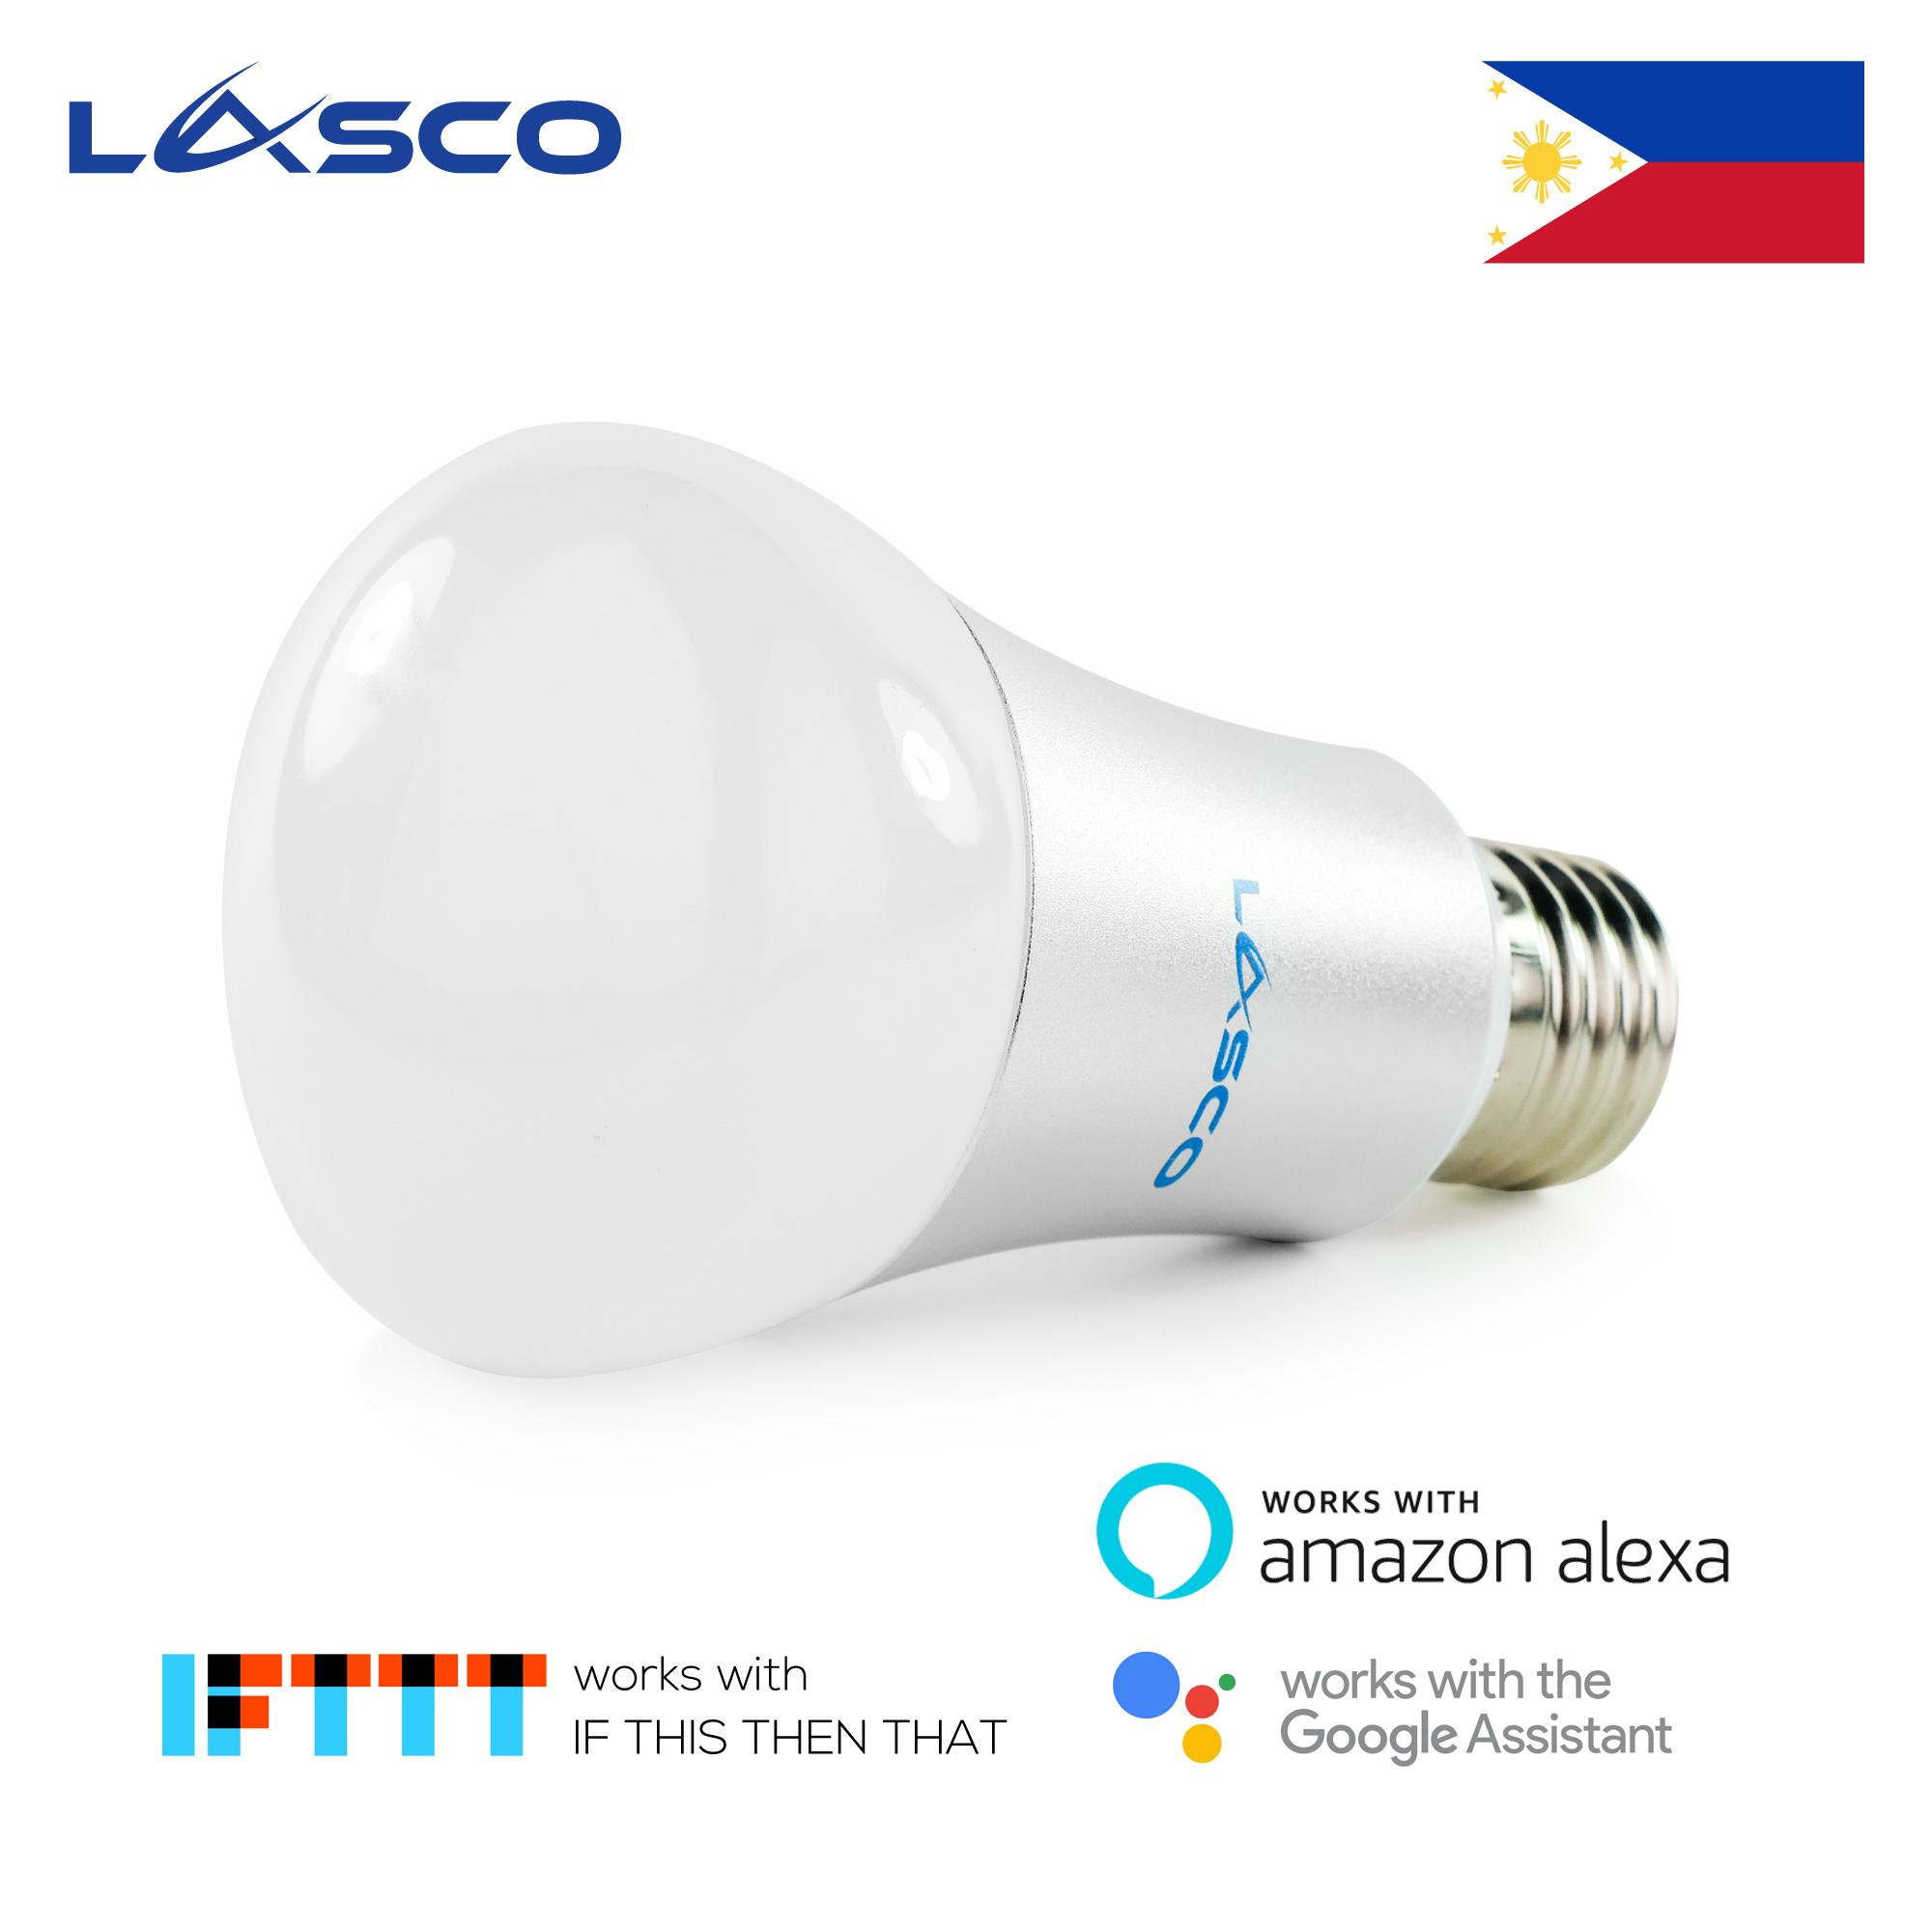 Light Bulbs For Sale Led Prices Brands Review In 12v Drive 7 High Efficiency White Flashlight Lasco Smart Wifi Bulb Quality Aluminum Housing Watts Rgbw Color Changing Works